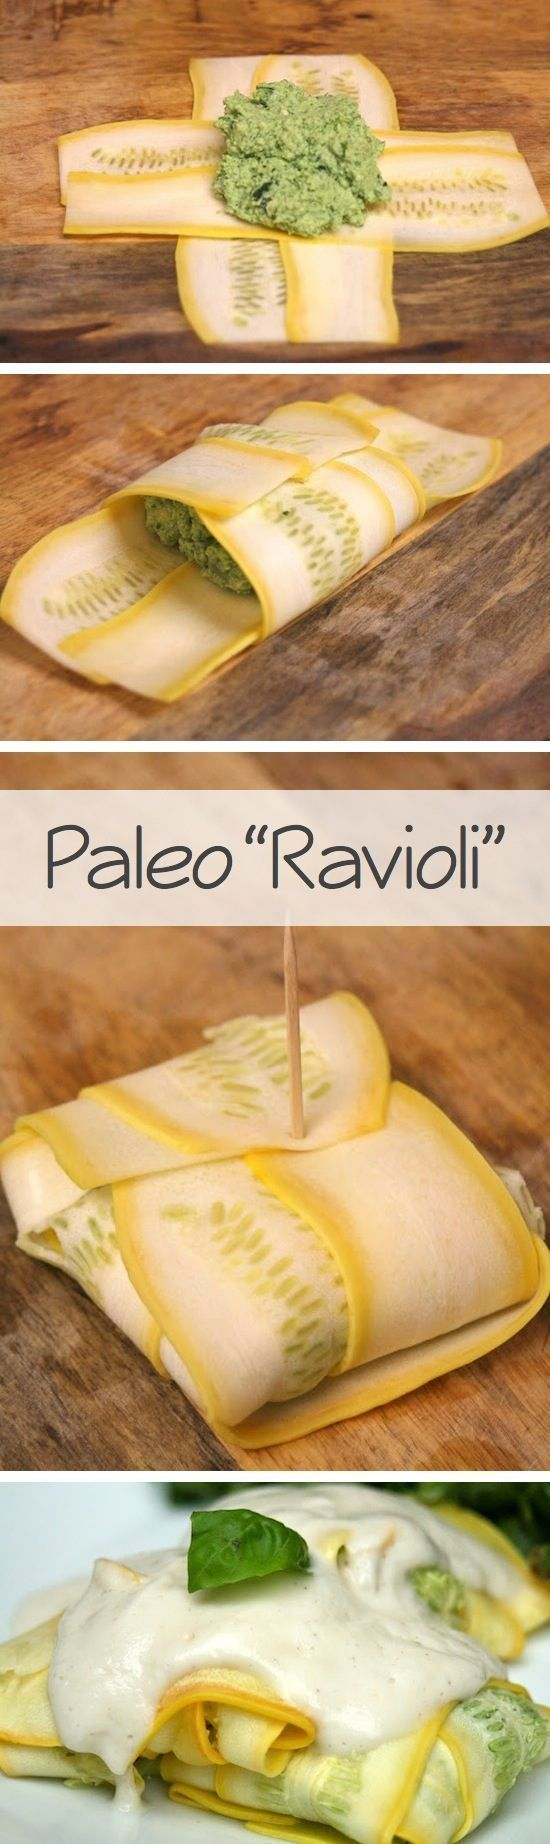 """Healthy Recipe. Paleo """"Ravioli"""" ........ Squash and zucchini make for excellent pasta substations but using it as a ravioli wrap is a must try!"""